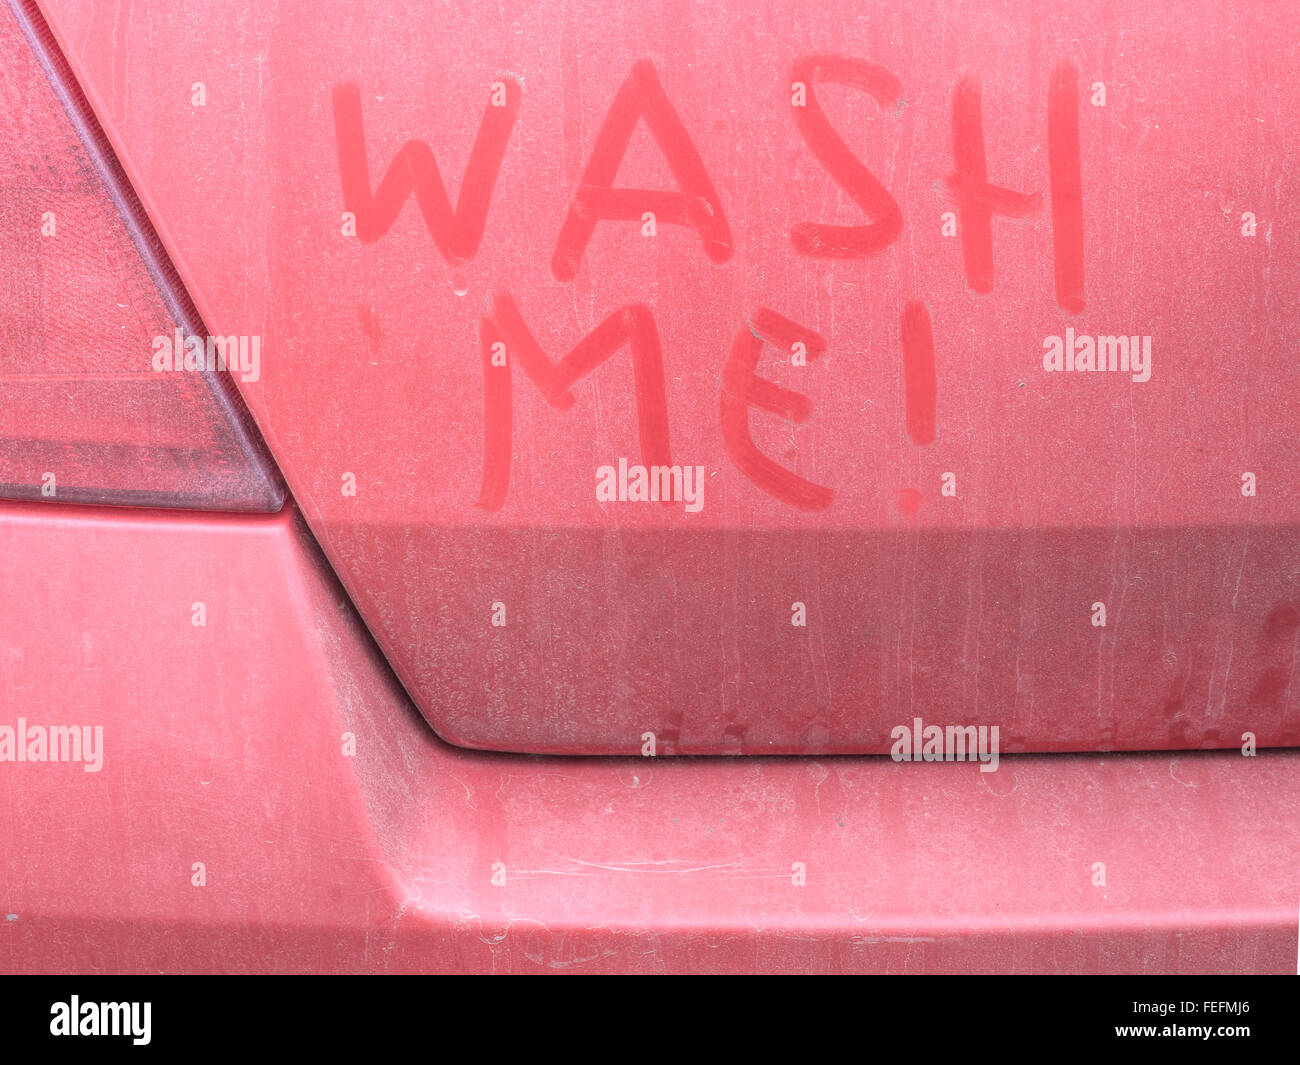 Dirty Red Car Wash Me Written In Grime Stock Photo Royalty Free